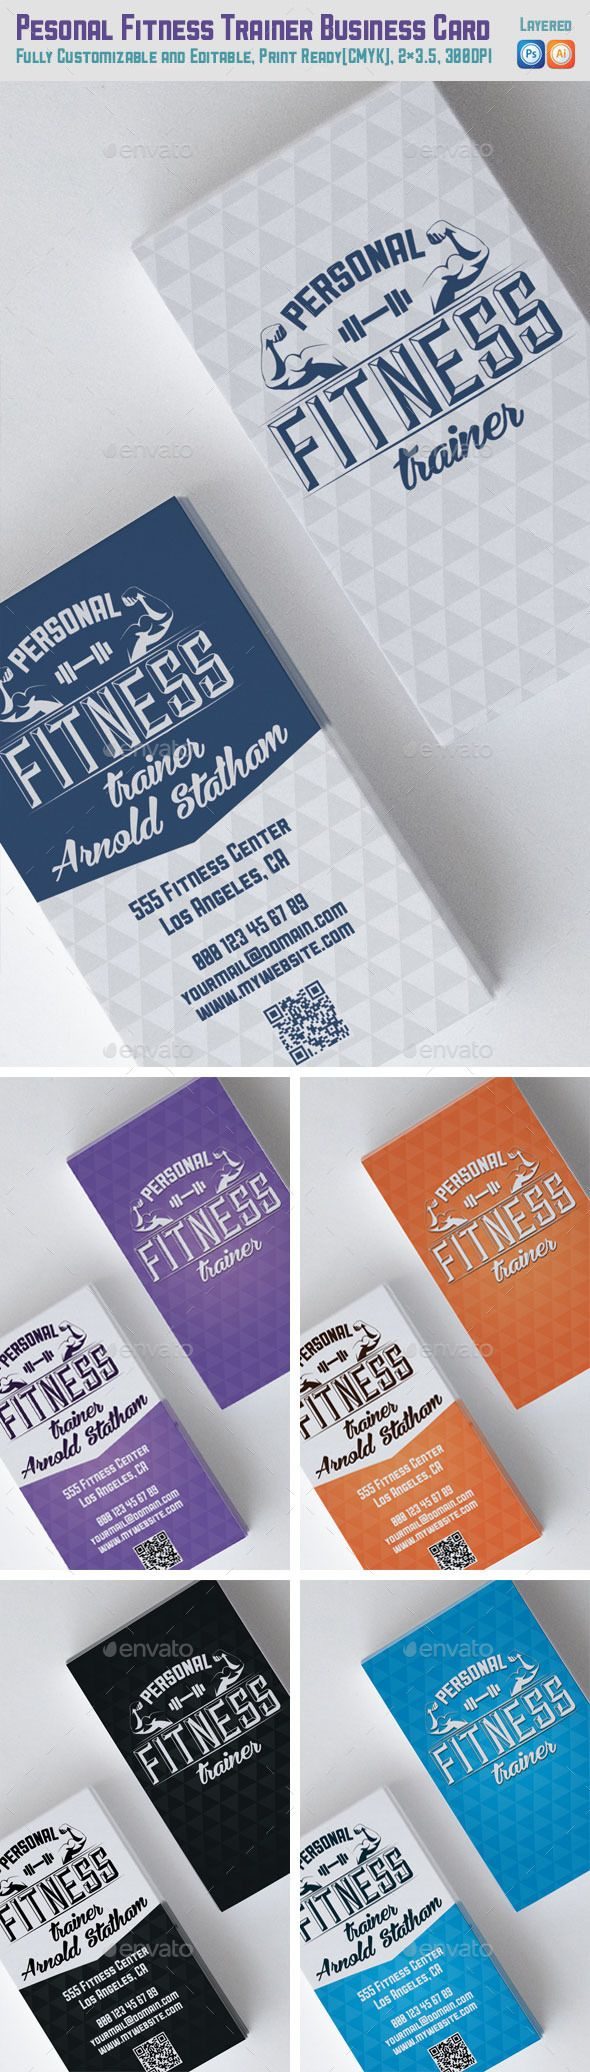 Personal Fitness Trainer Business Card - Industry Specific Business Cards